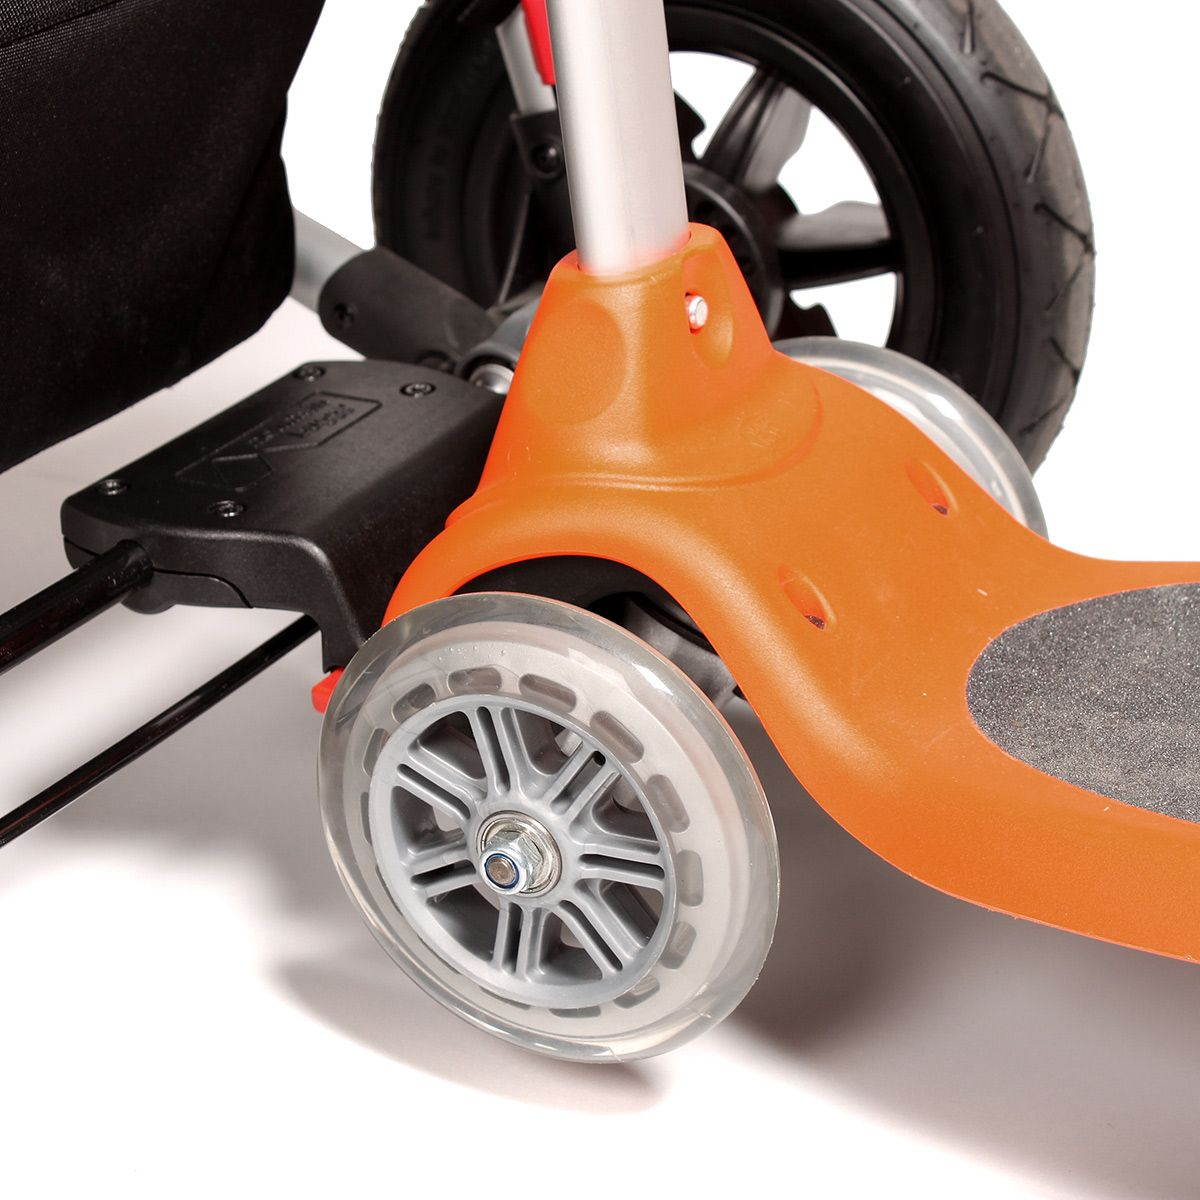 Freerider™ Kids scooter, Stroller, Stroller board